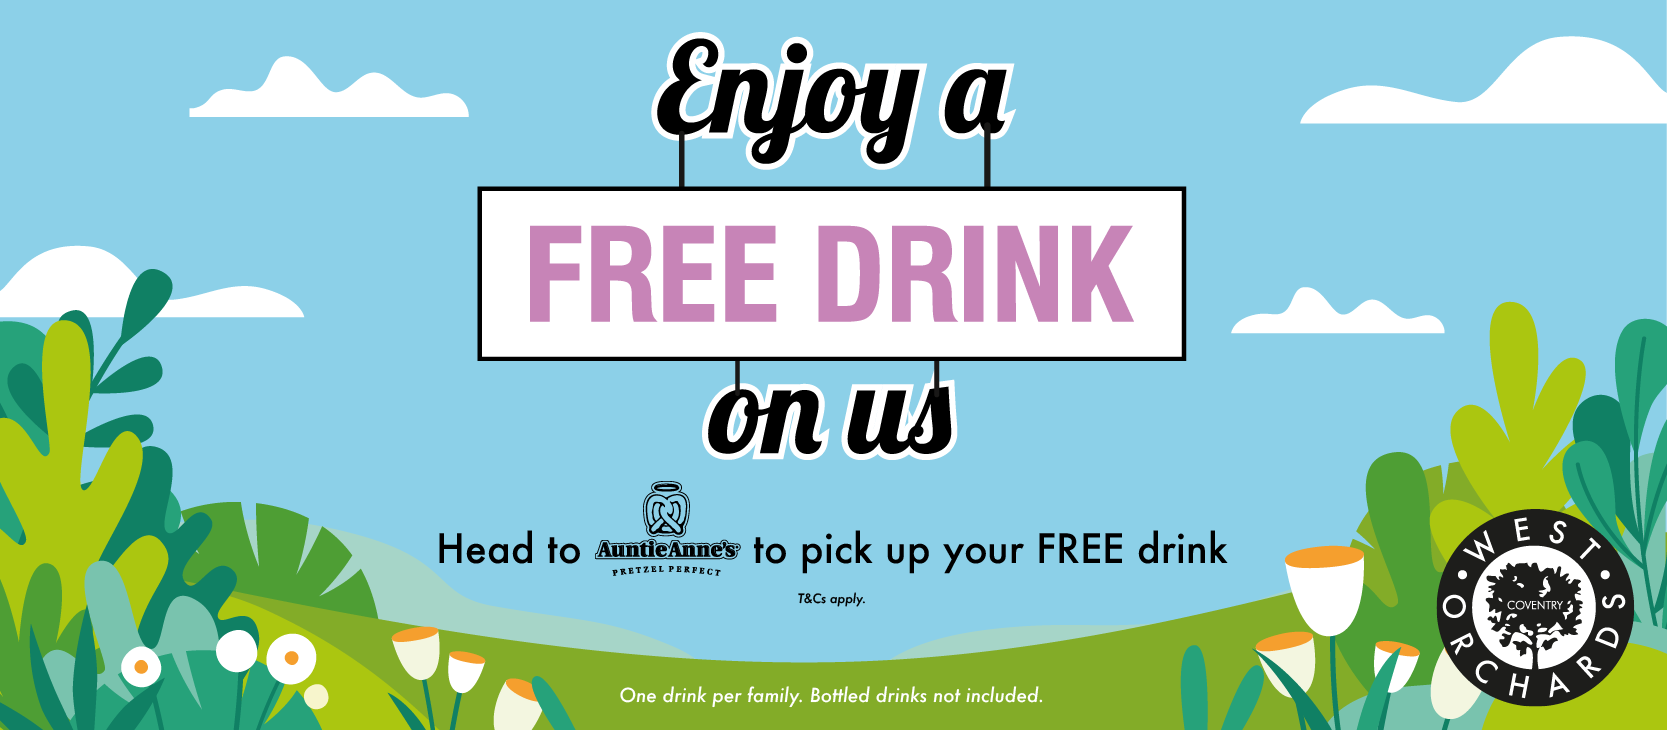 Free DRINK from Auntie Anne's